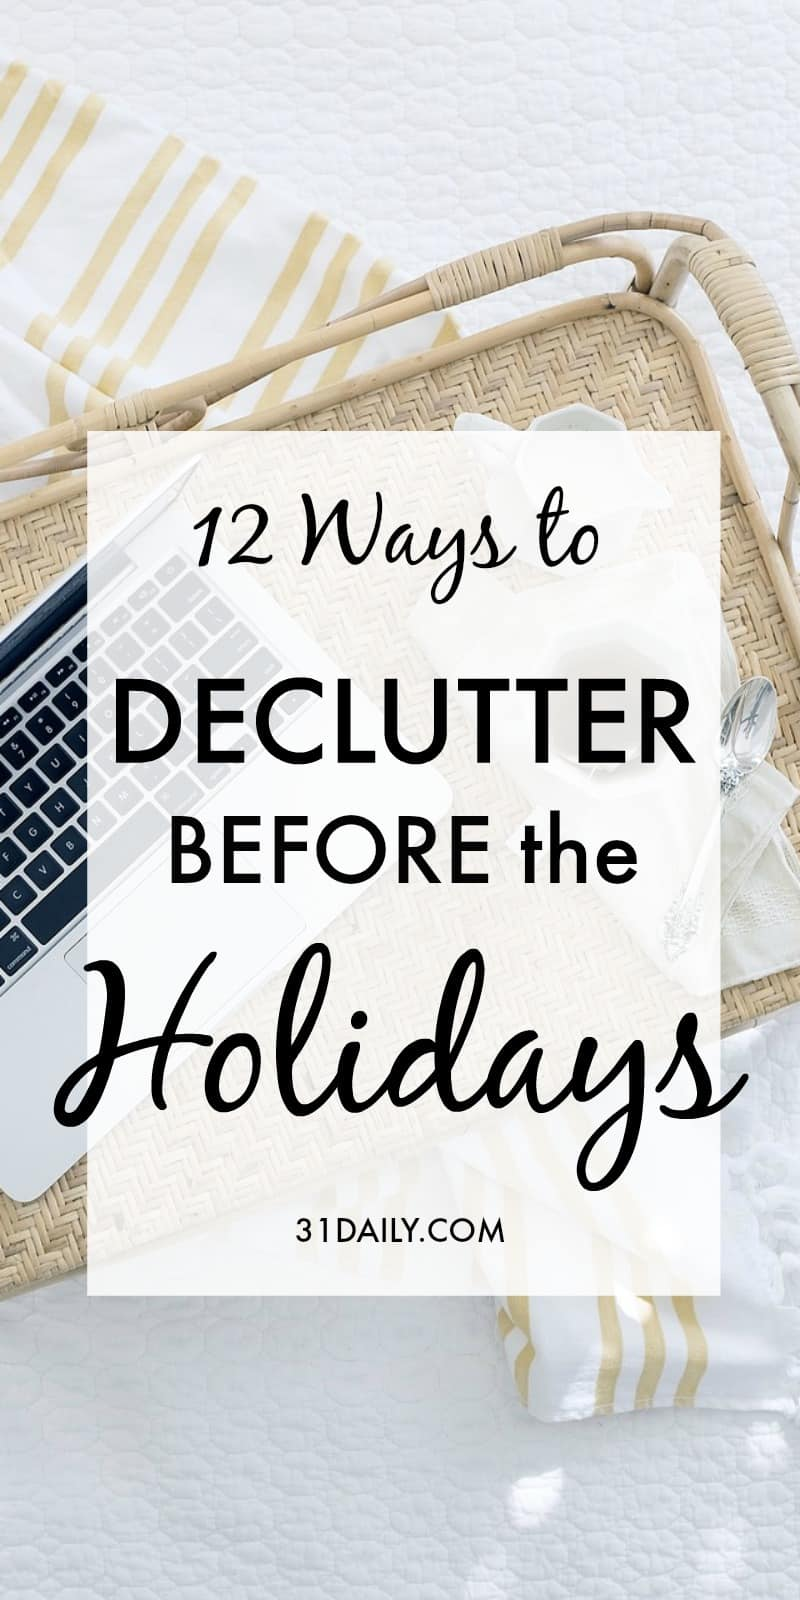 12 Ways to Declutter Before the Holidays | 31Daily.com